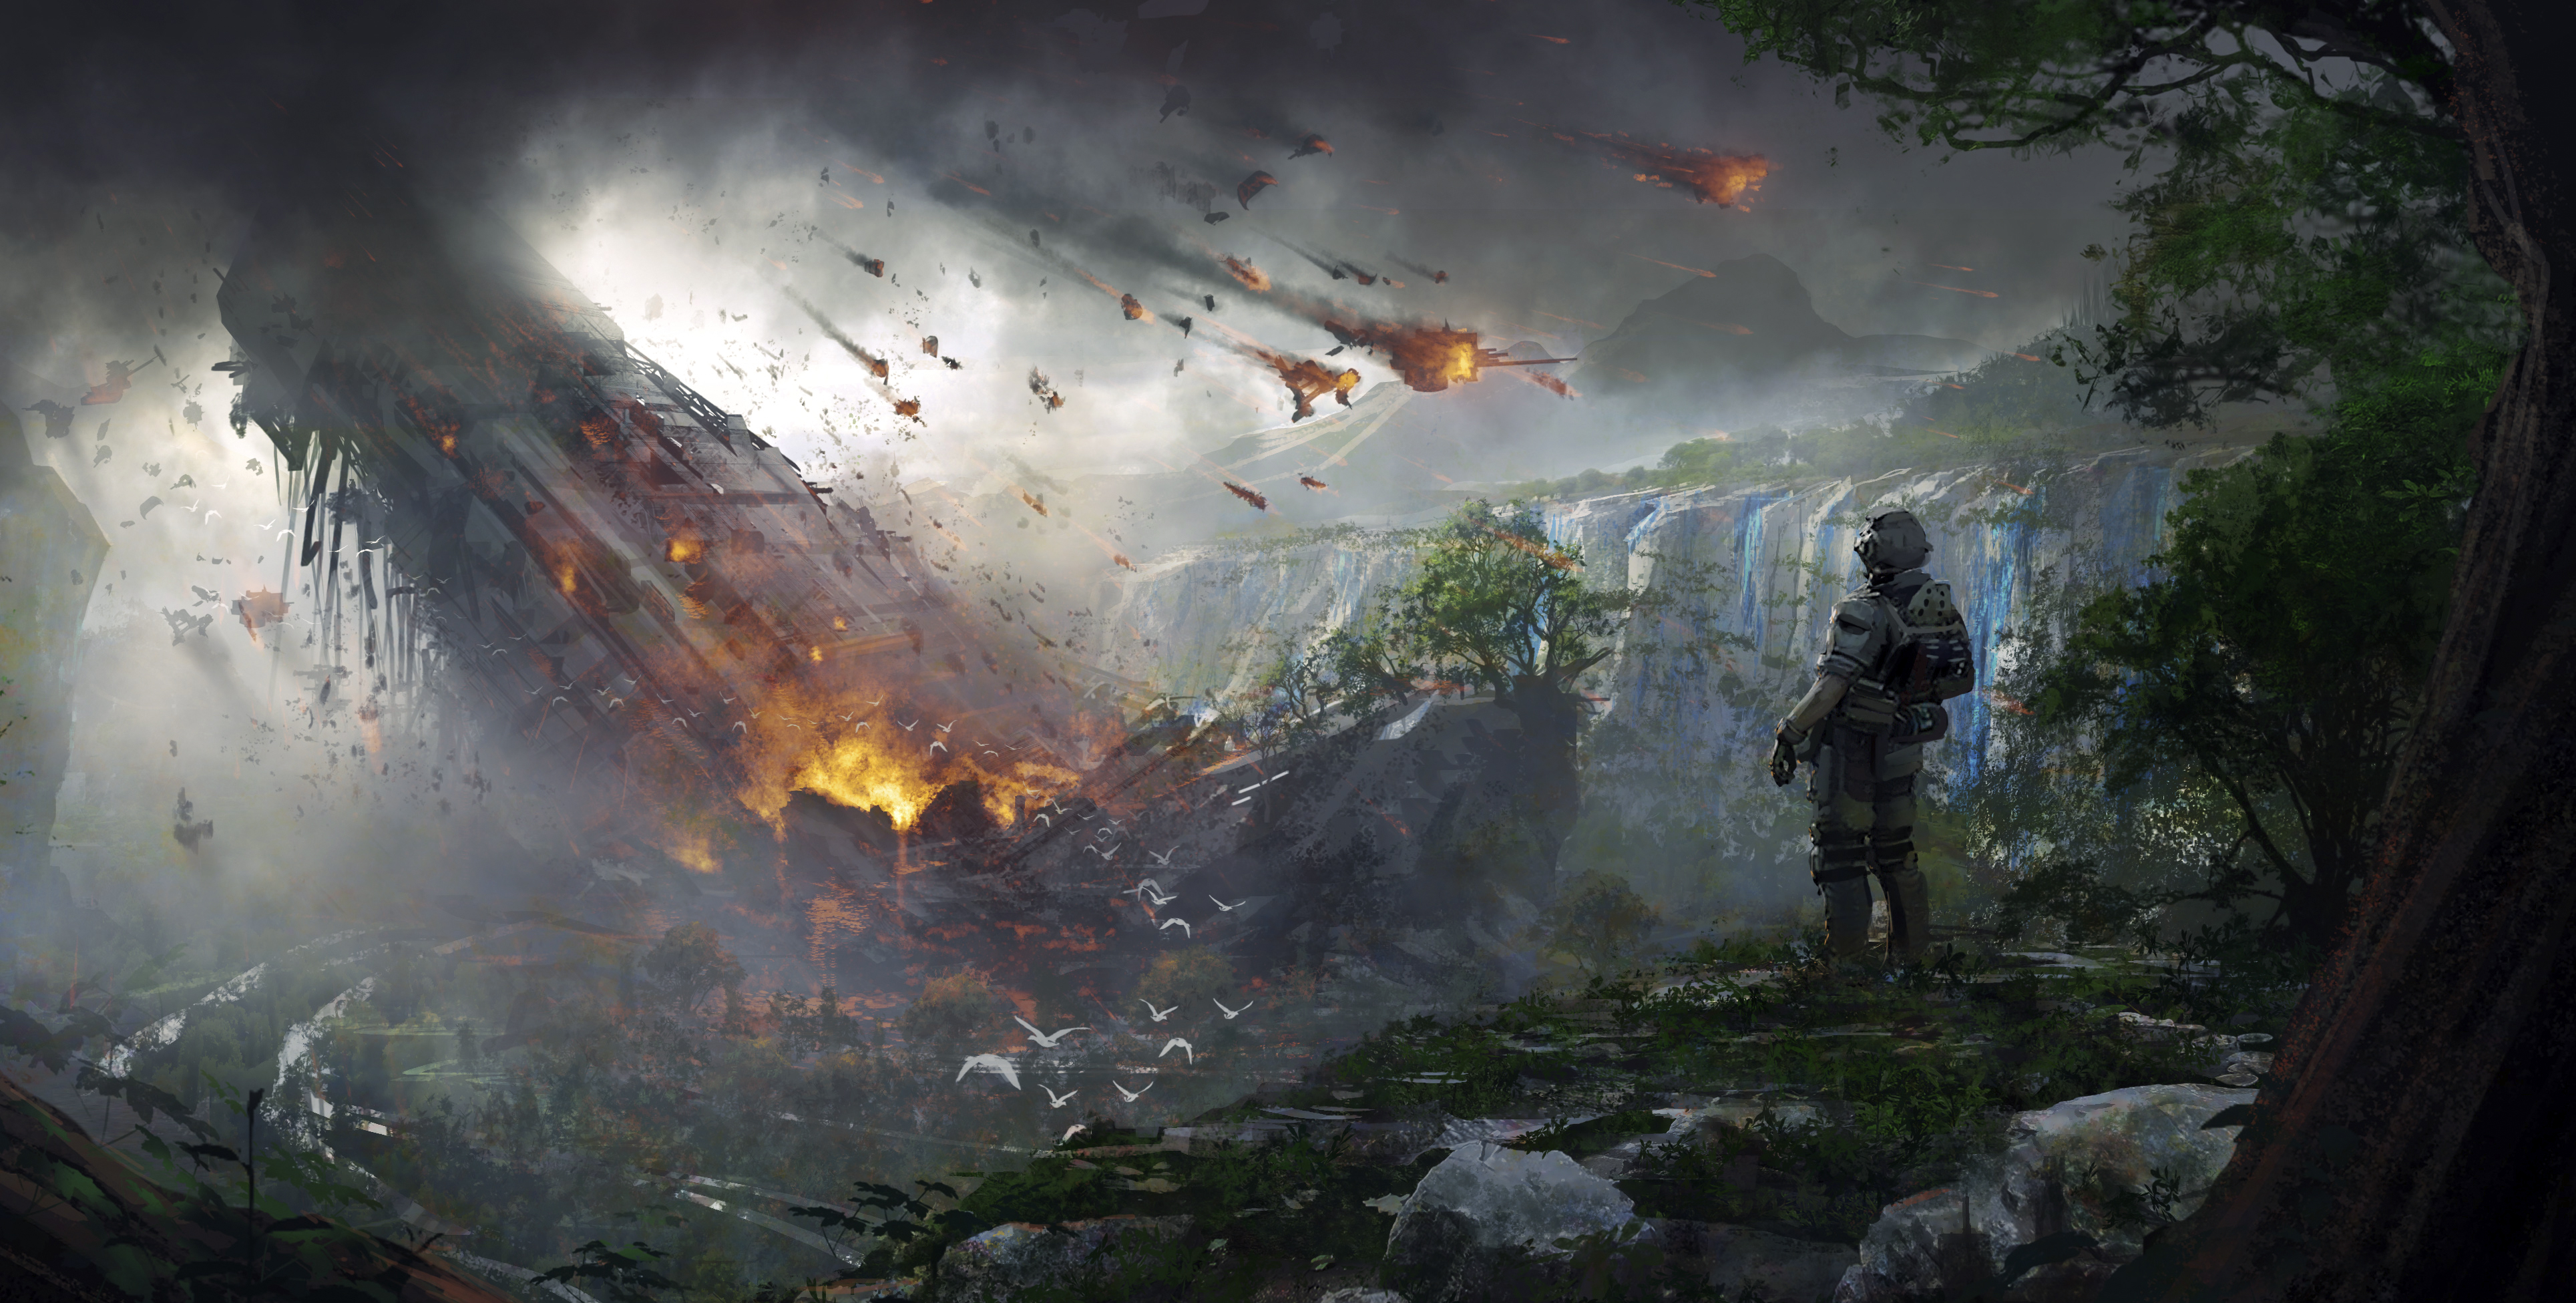 Titanfall 2 Wallpapers, Pictures, Images  Titanfall Iphone 5 Wallpaper